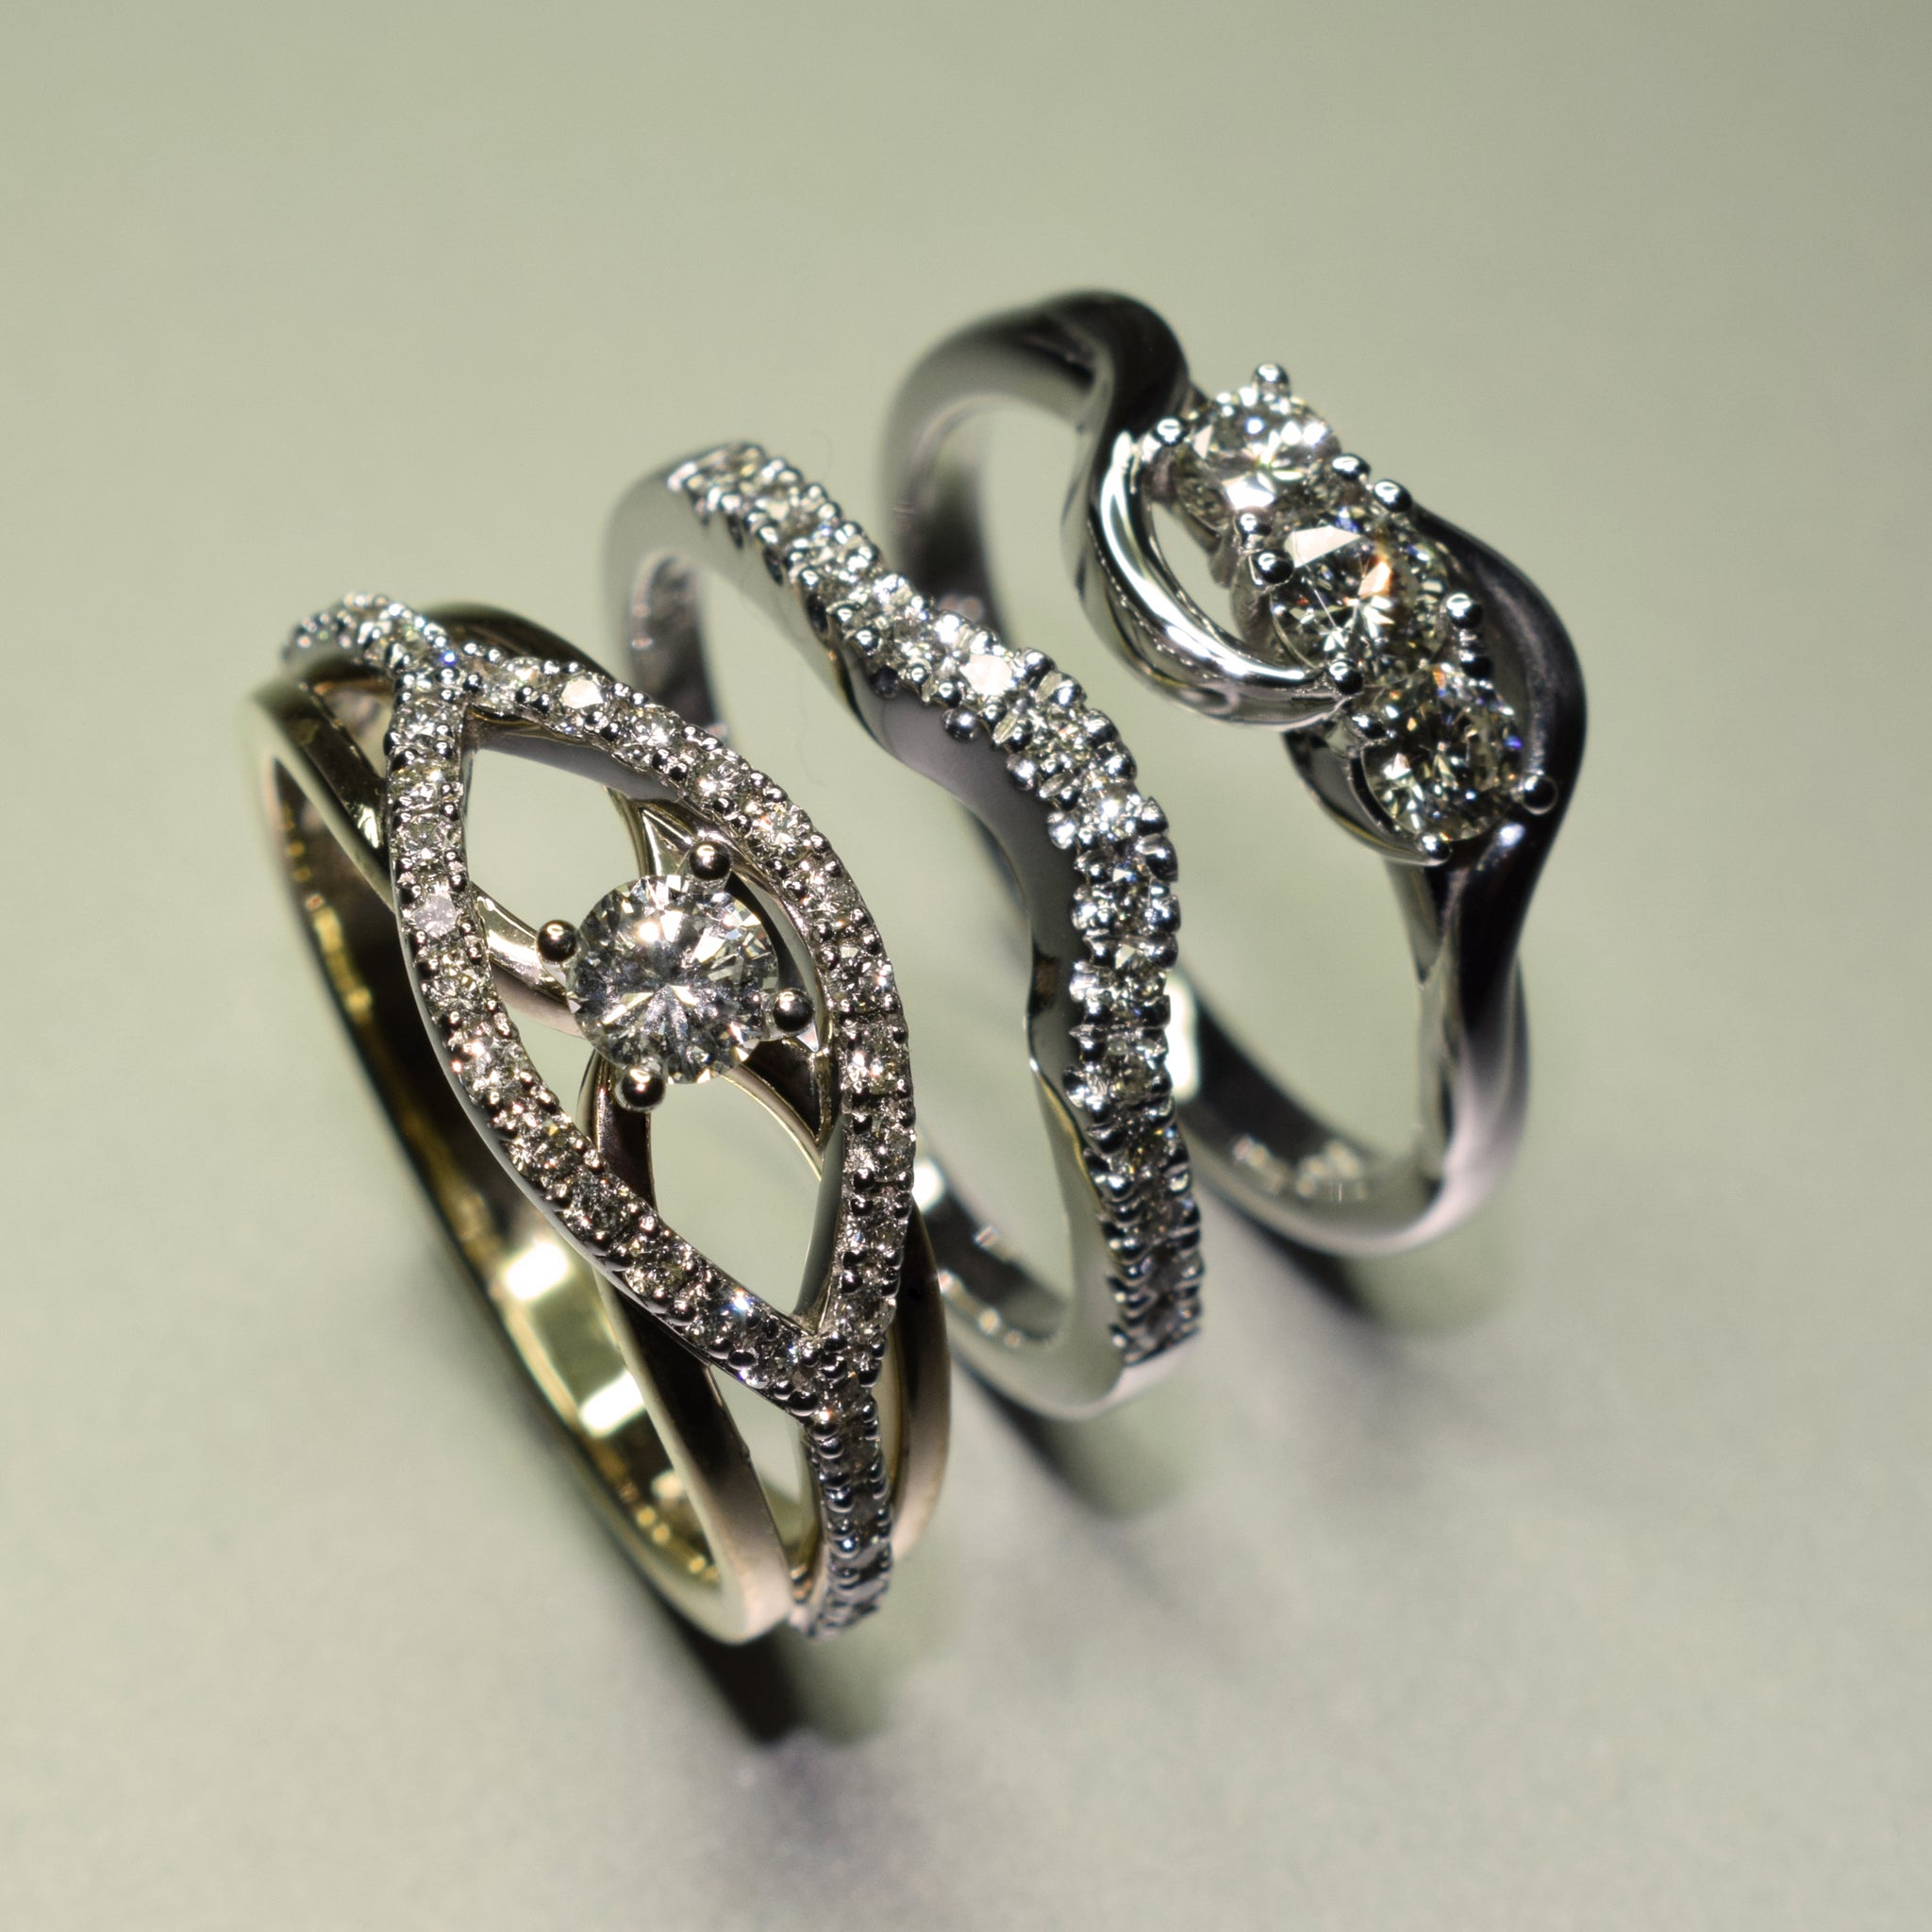 9K white and yellow gold diamond rings